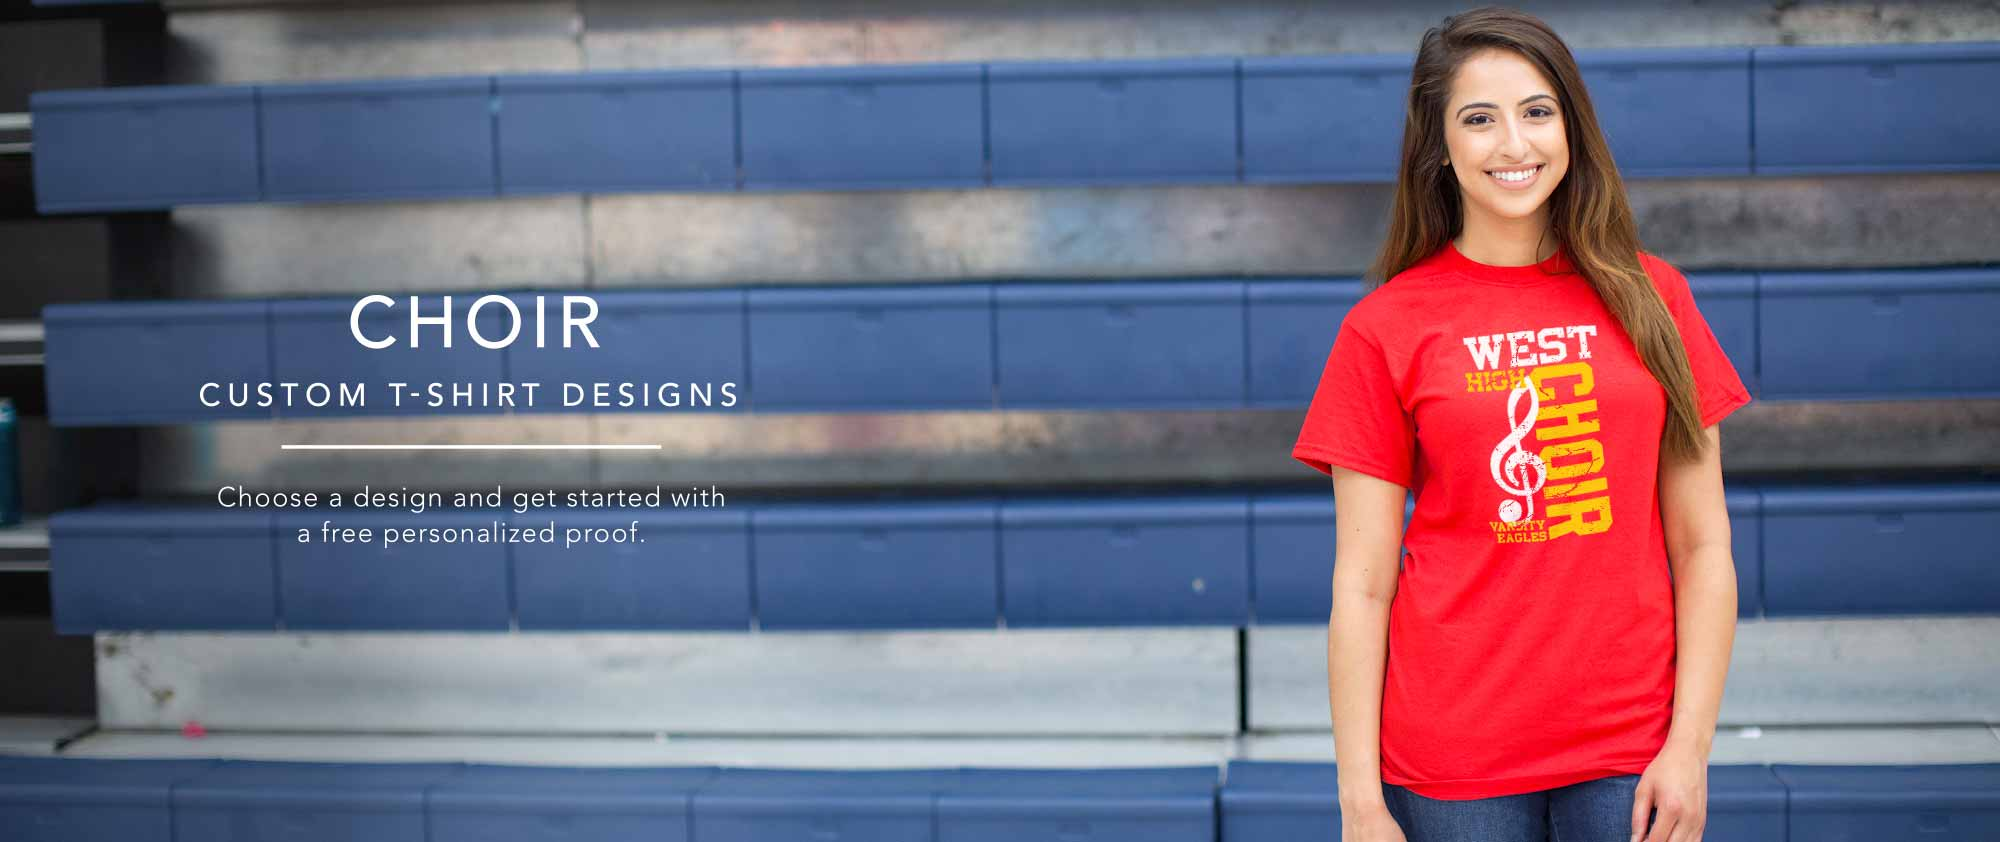 Image Market Student Council T Shirts Senior Custom T Shirts High